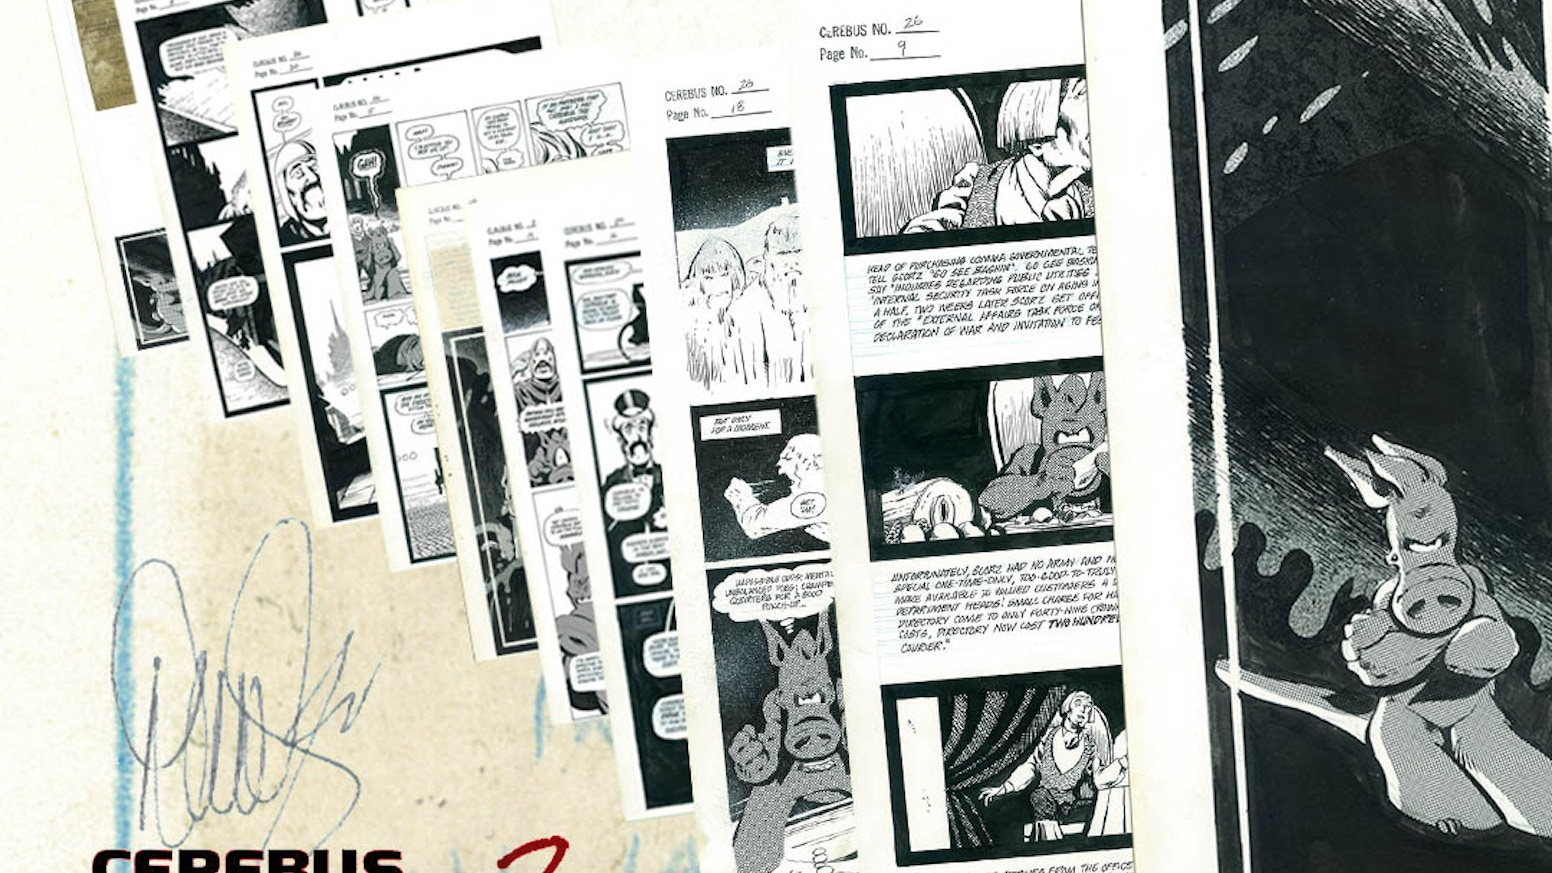 A FOLIO OF THE TEN EARLIEST HIGH SOCIETY PAGES IN THE CEREBUS ARCHIVE WITH COMMENTARY BY DAVE SIM.